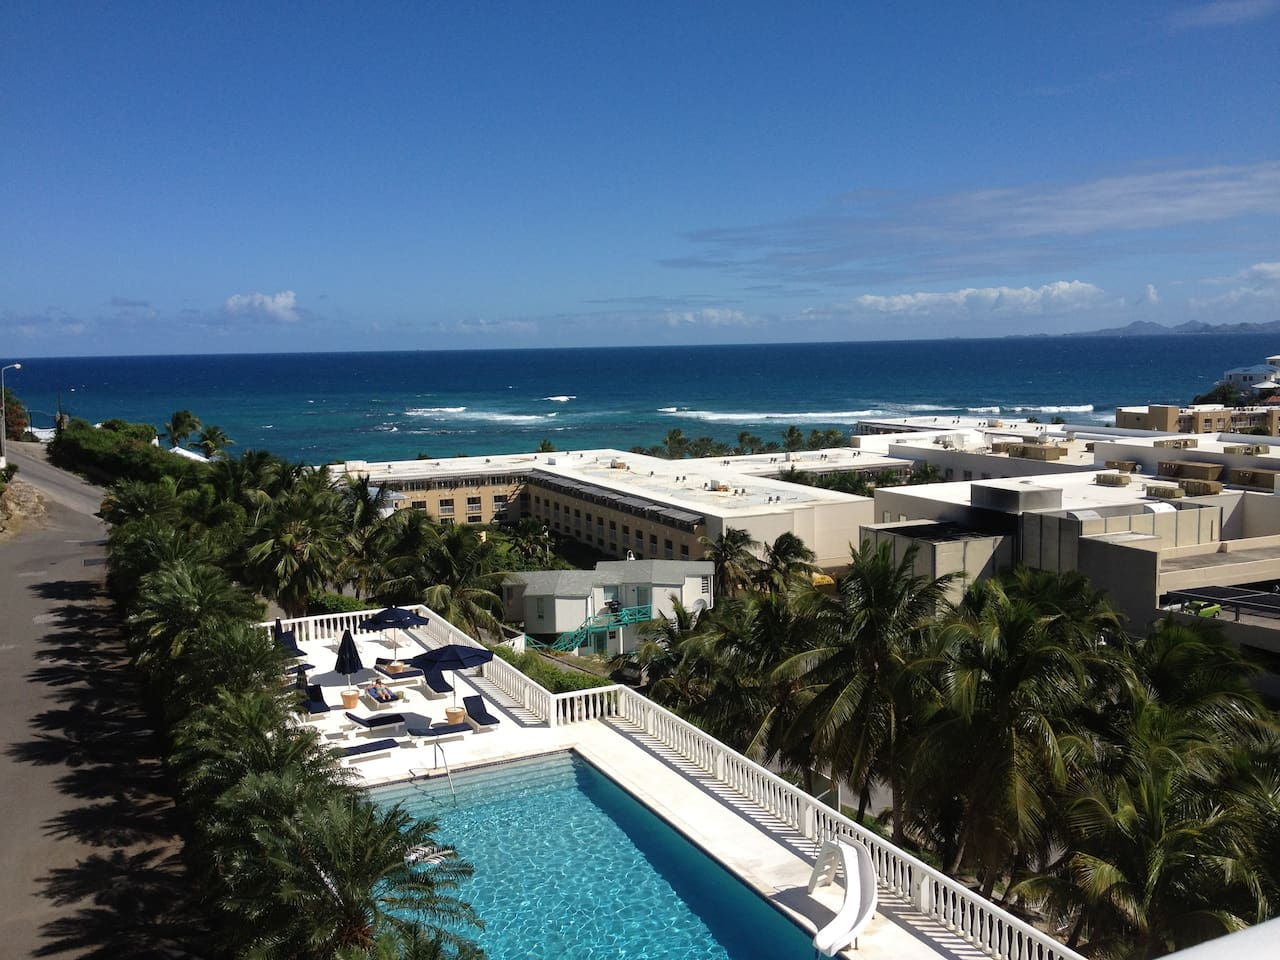 Spectacular Ocean View with pool and Westin Resort in foreground